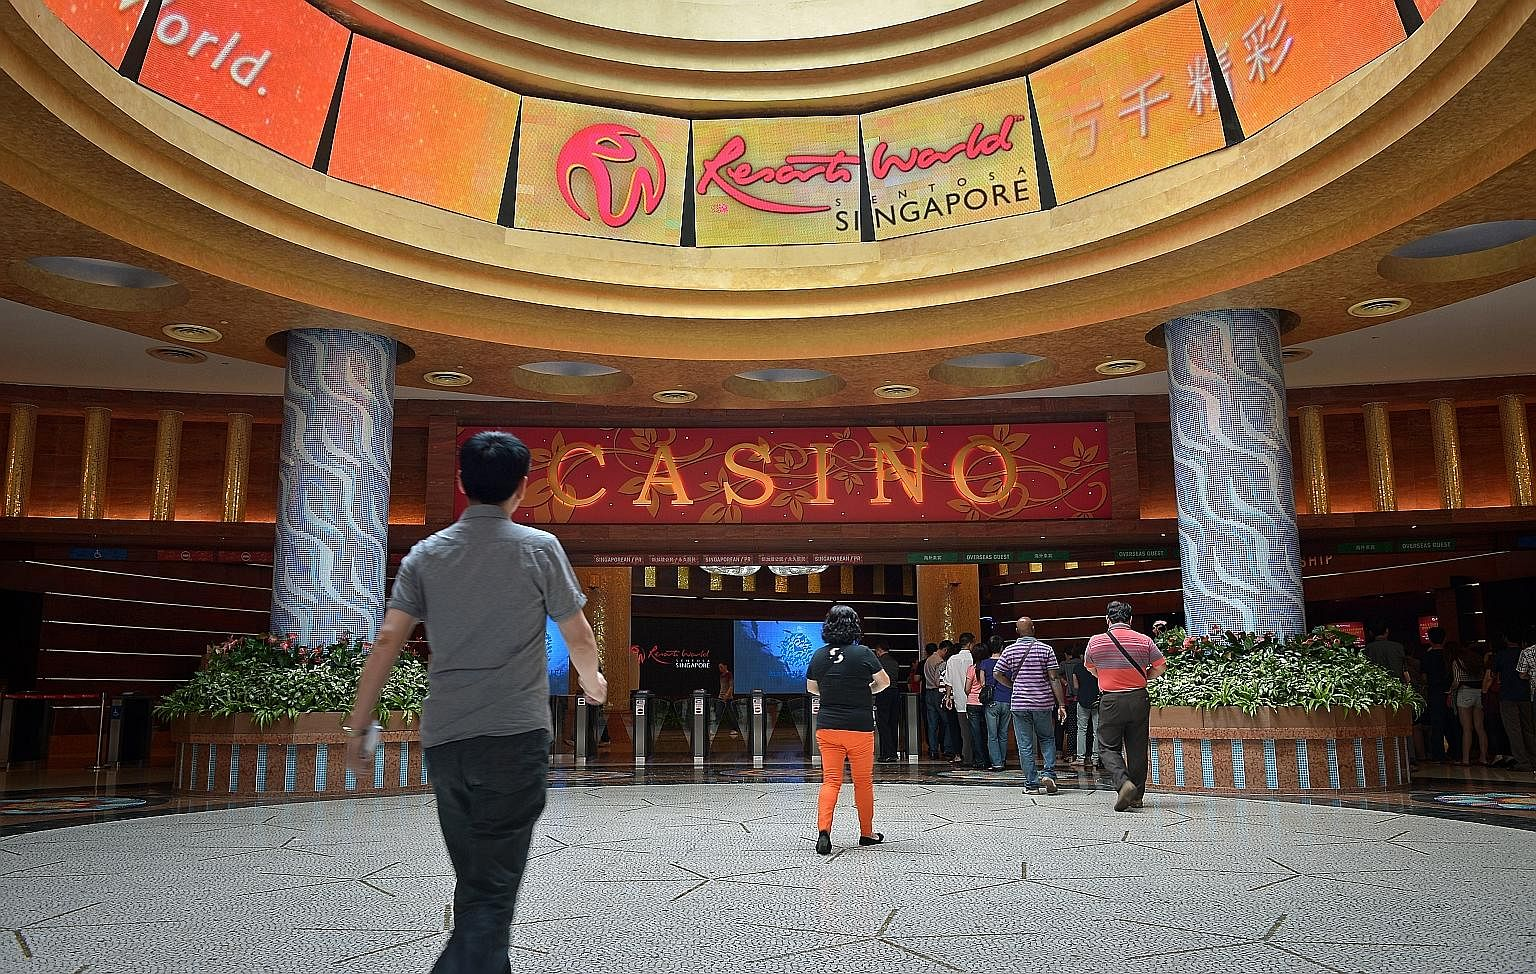 Genting Singapore shares rebounded well above the highest the firm paid for its share buyback, rising 55 per cent in eight months.